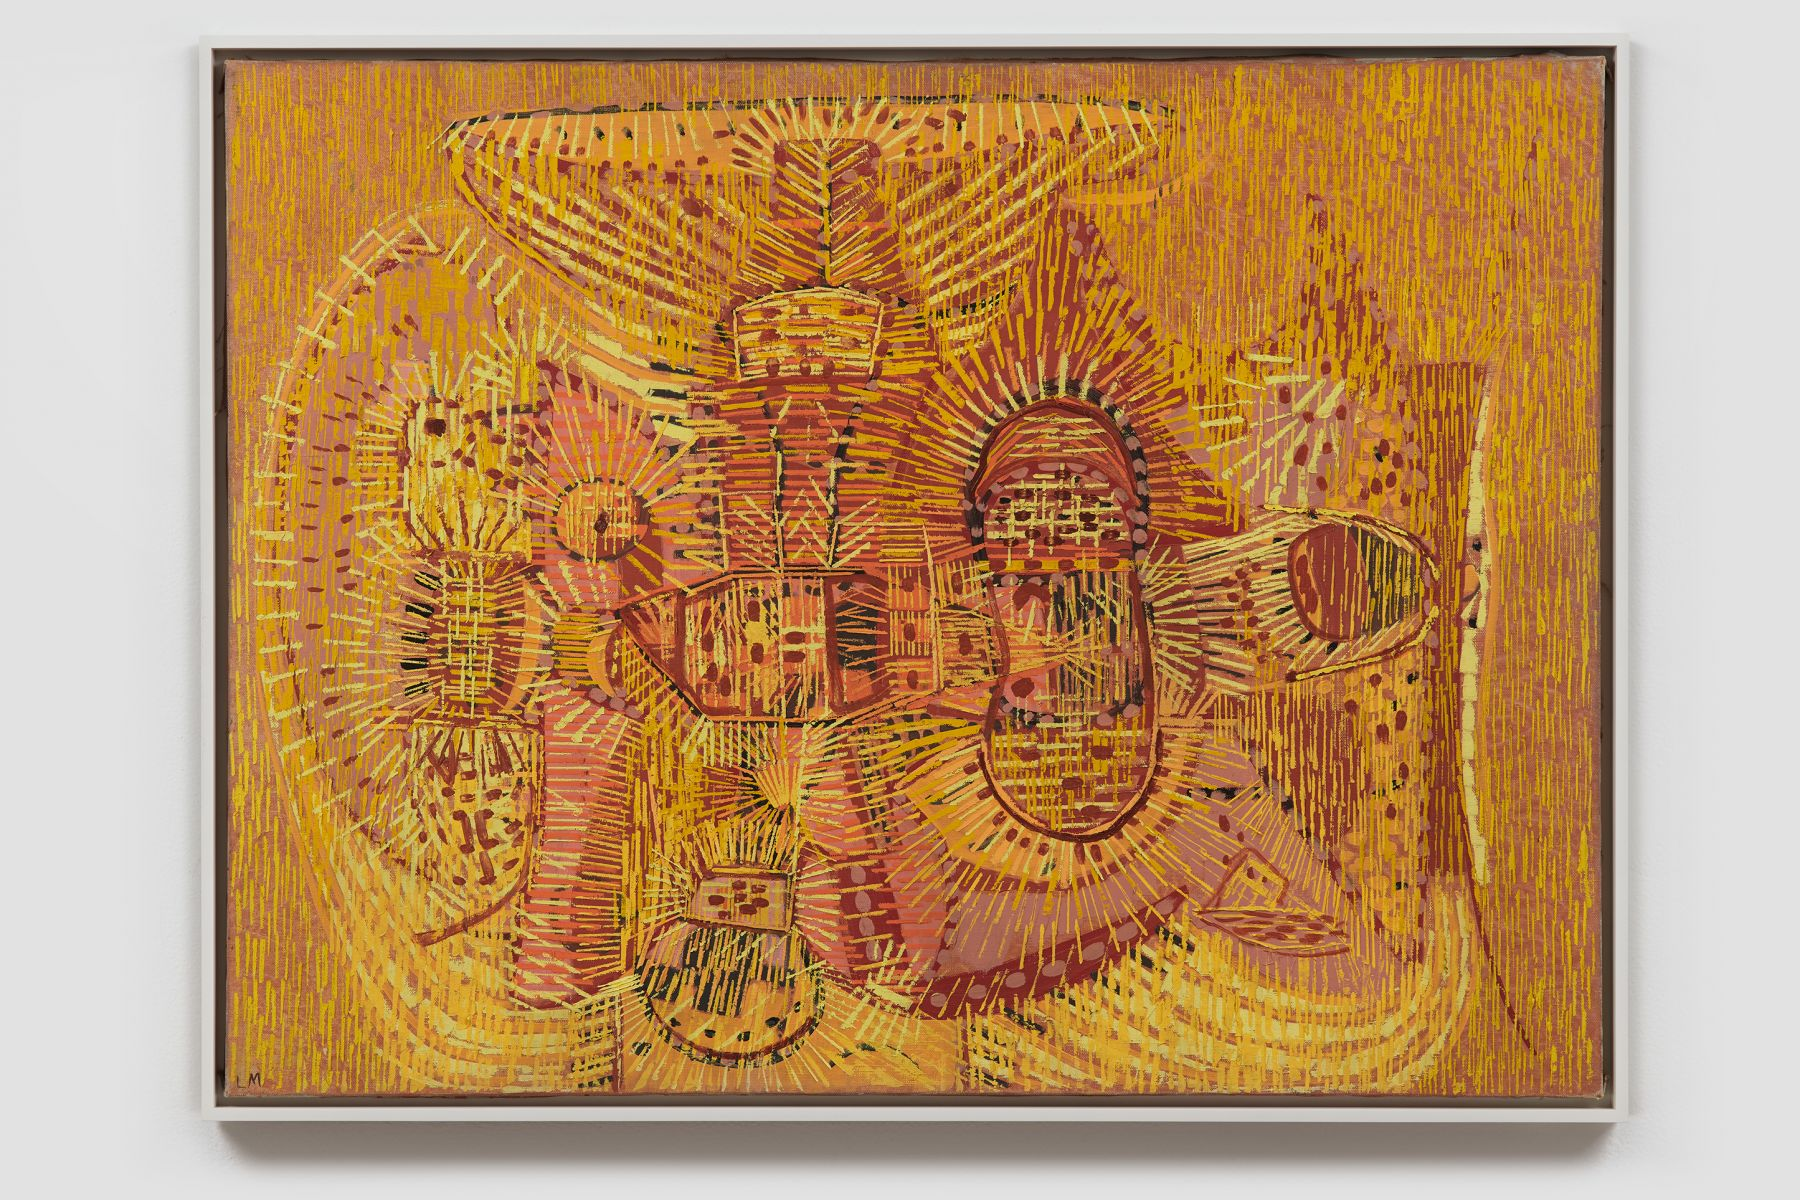 LEE MULLICAN Section Implanted